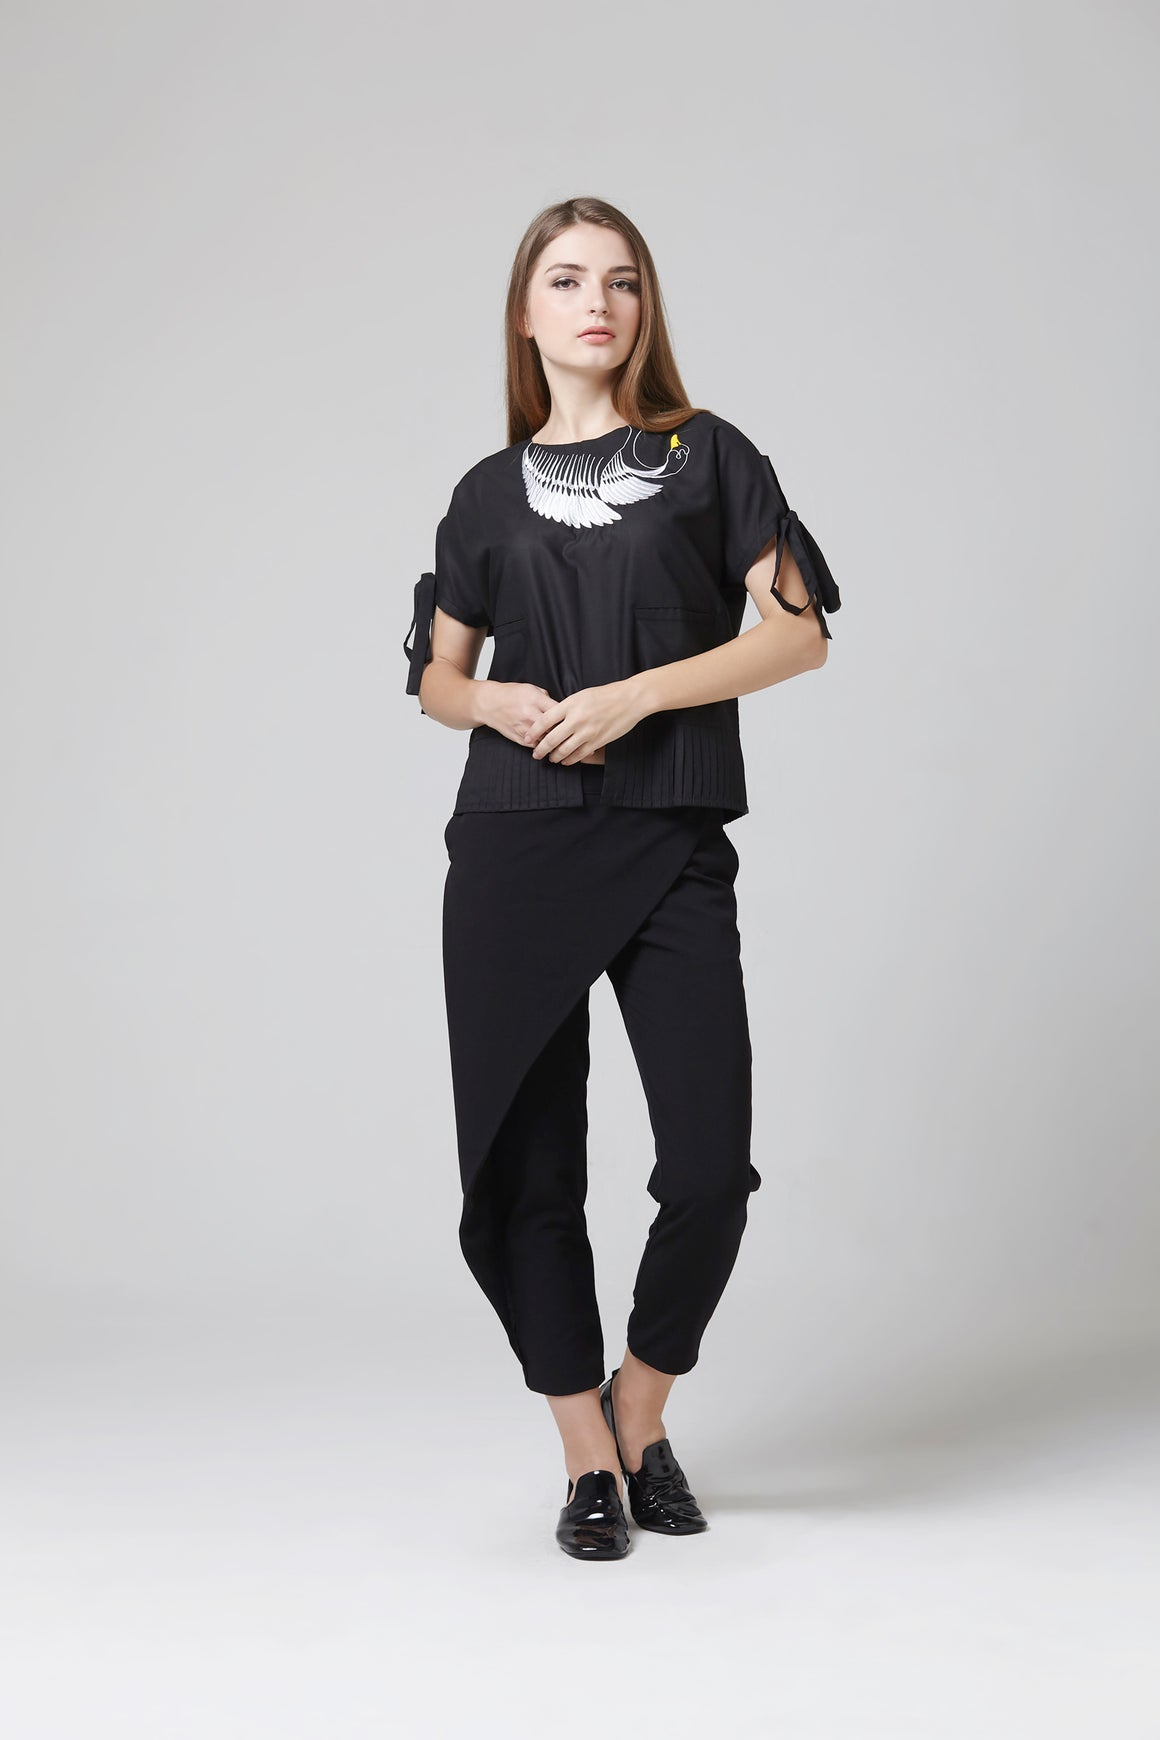 HAKU BLOUSE BLACK - TEMPORARY ANXIETY